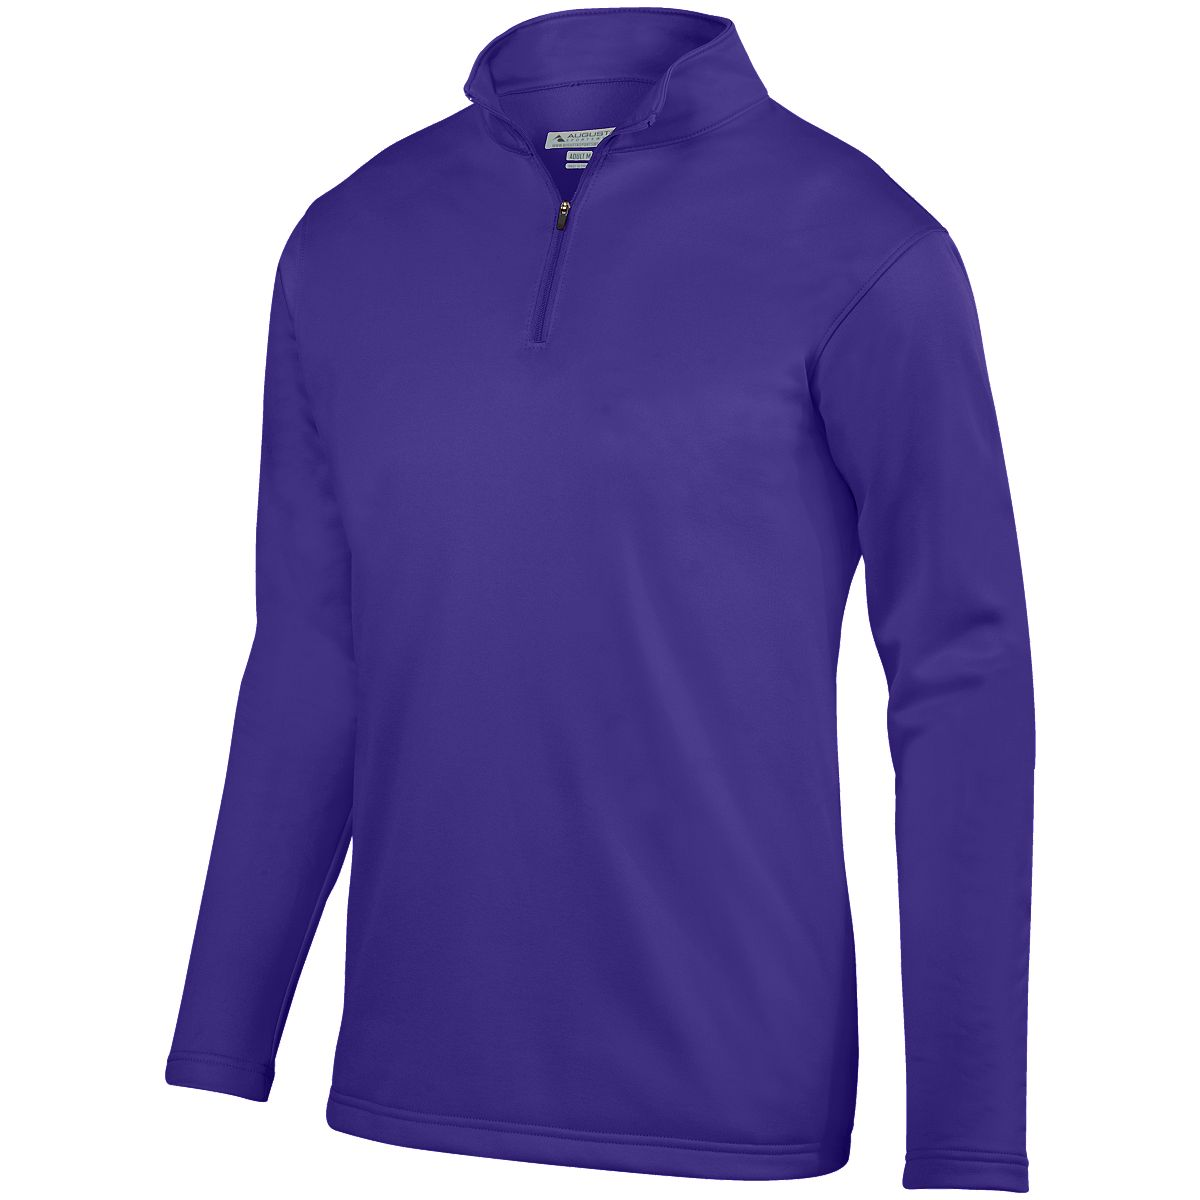 Augusta Youth Wicking Fleece Pullover Purple S - image 1 of 1